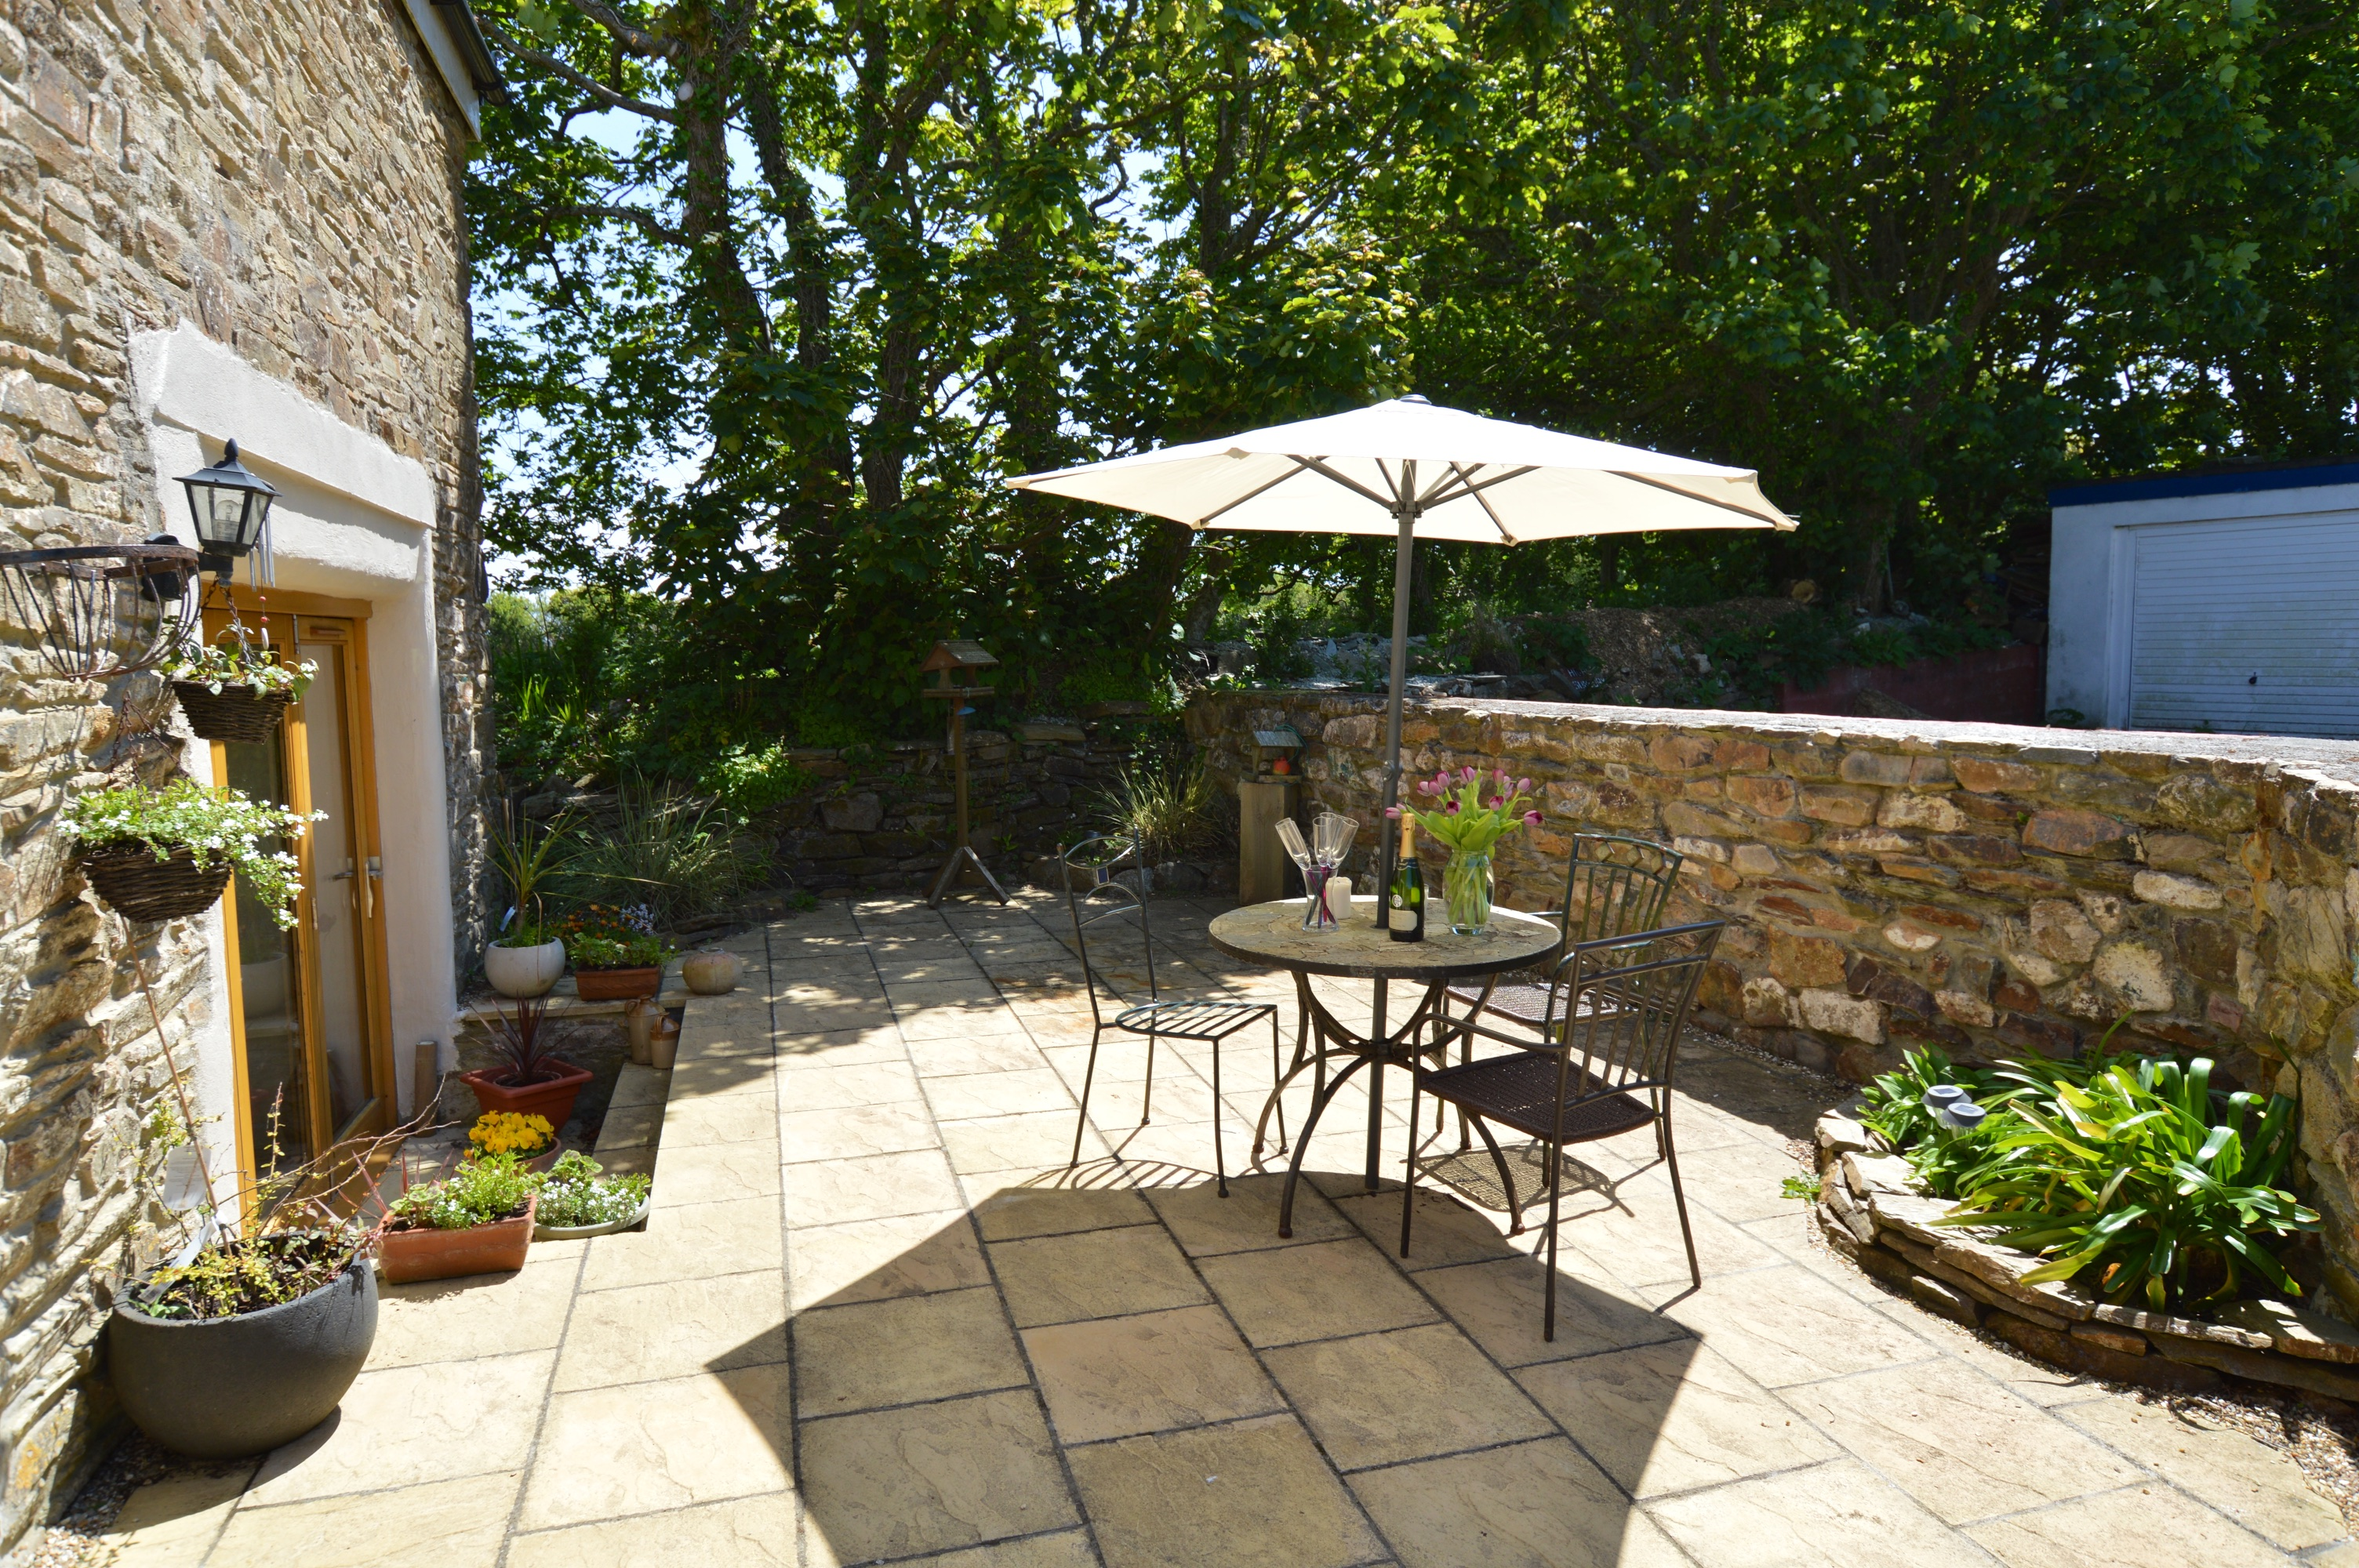 Holiday Homes For Sale In Cornwall Pure Cornwall